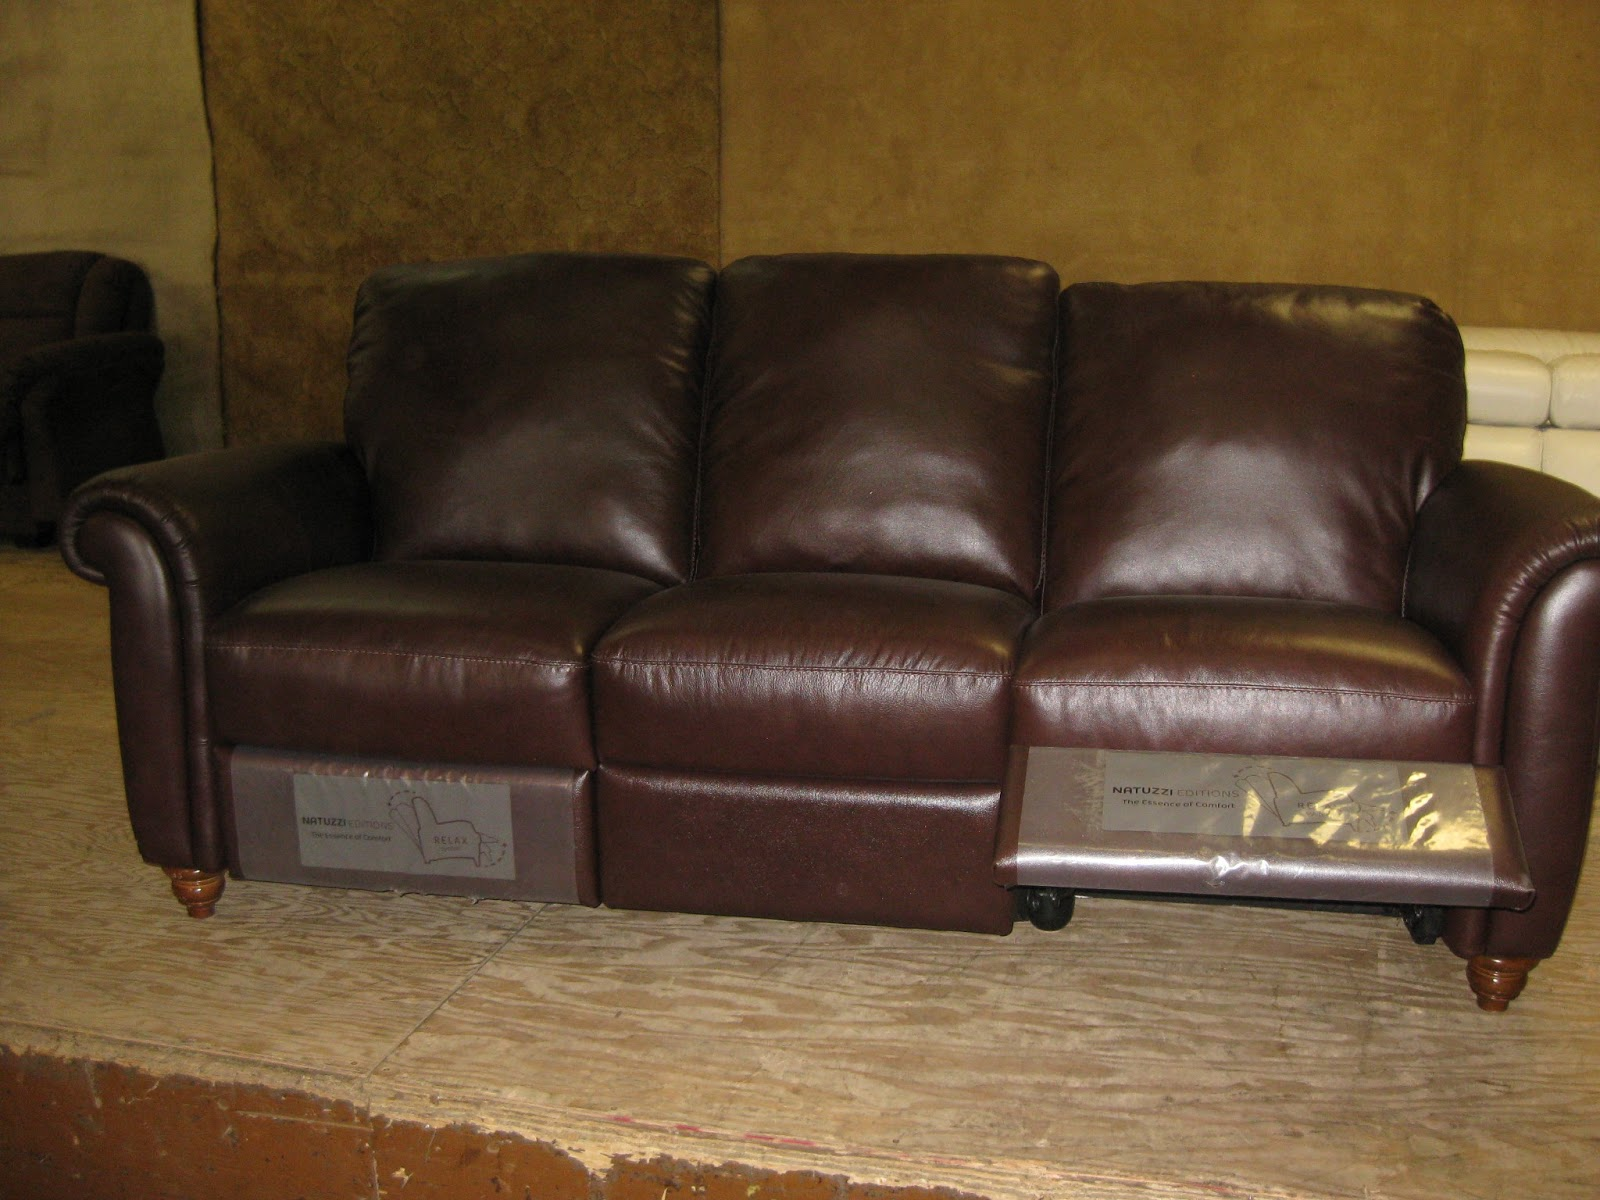 New furniture for saturday 39 s sale welcome to yellowhead auctions blog - Furniture pics ...